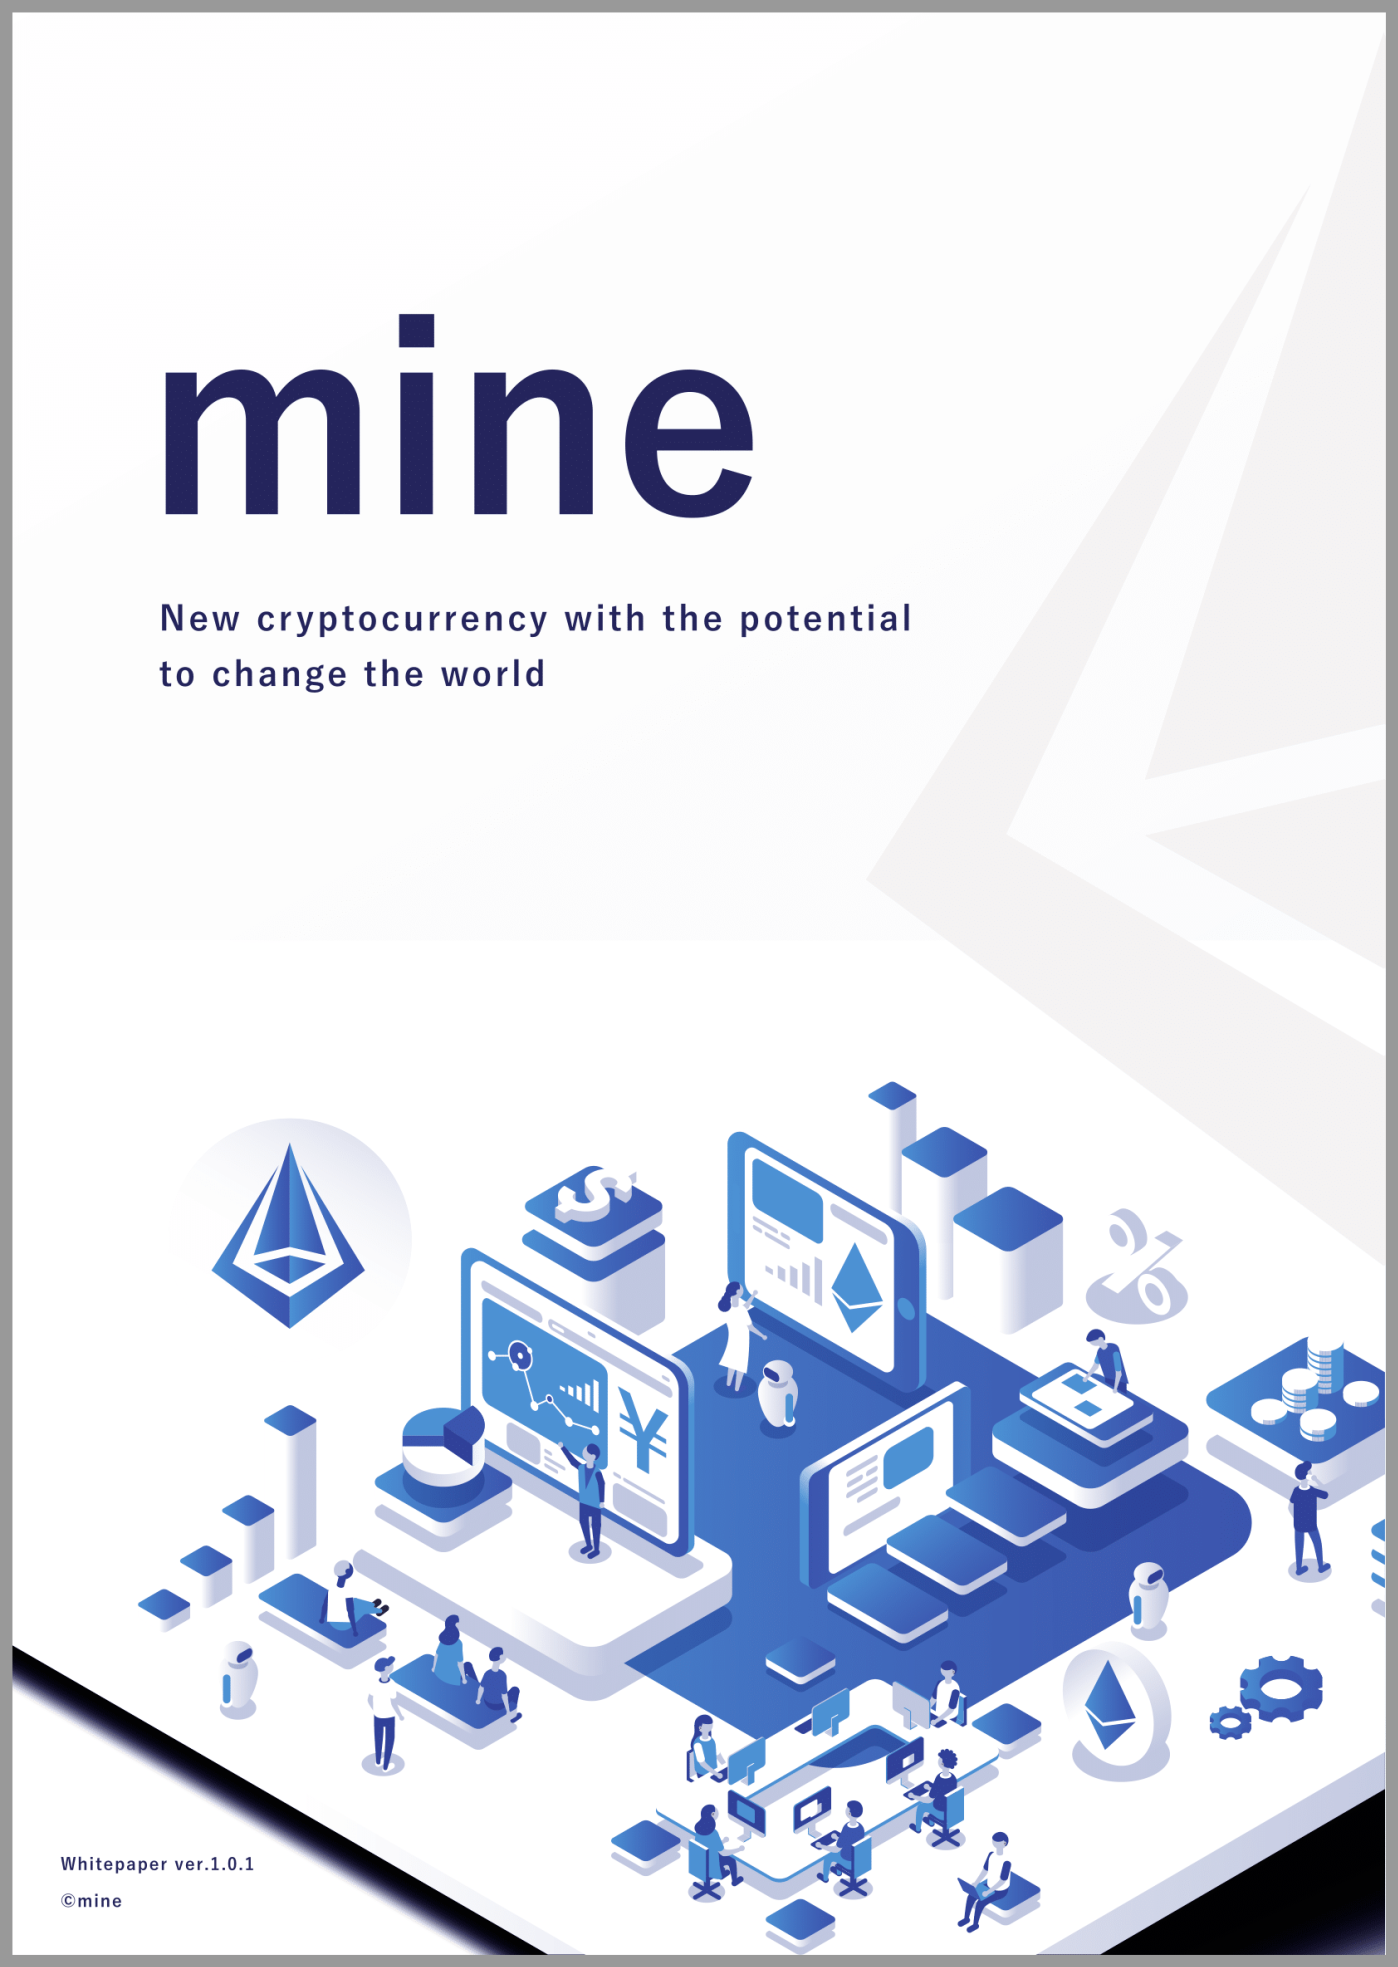 mine whitepaper